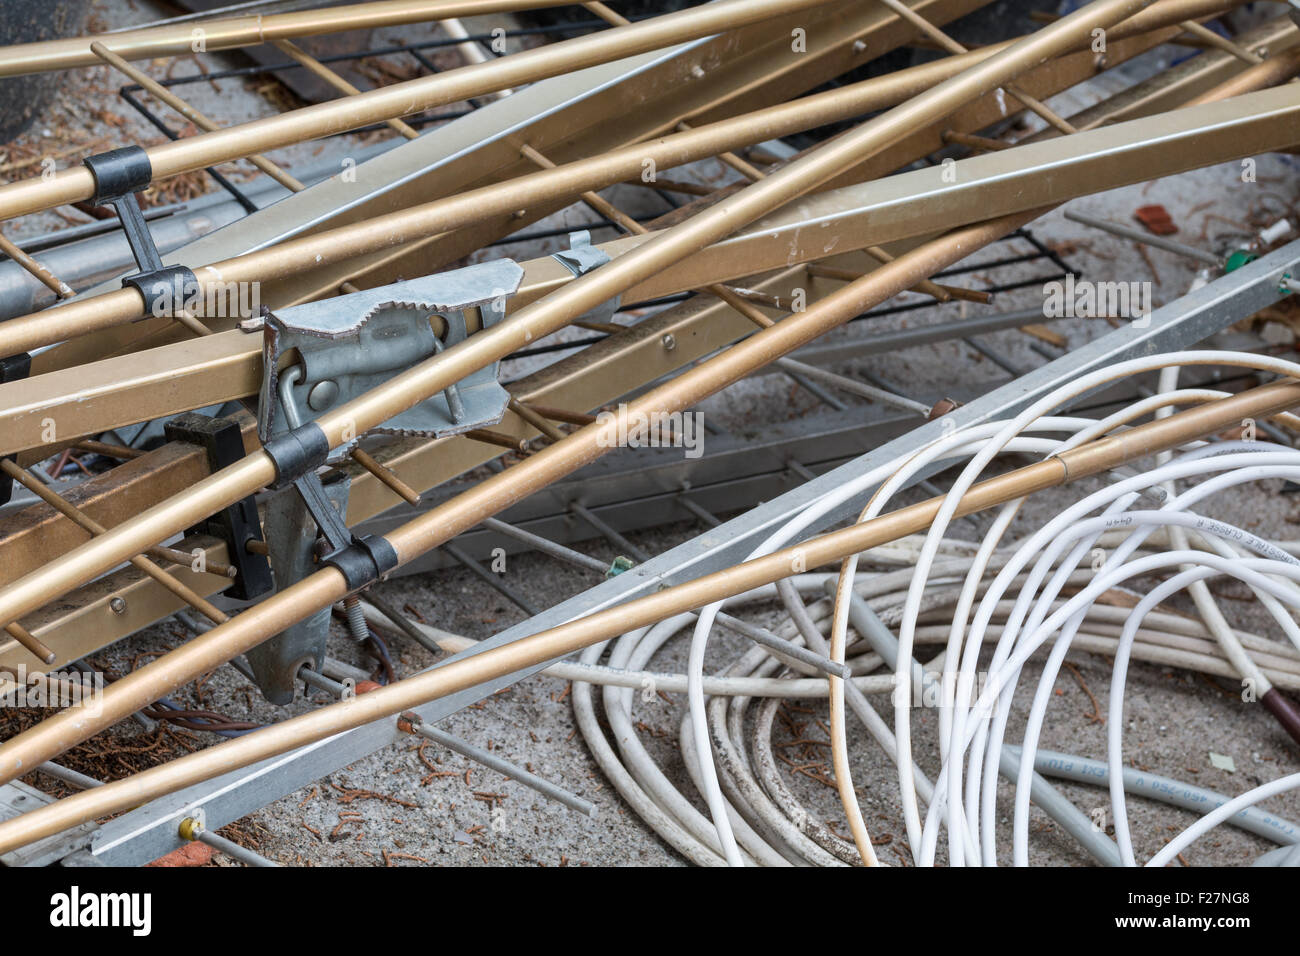 Scrap cable and metal in a waste landfill background - Stock Image